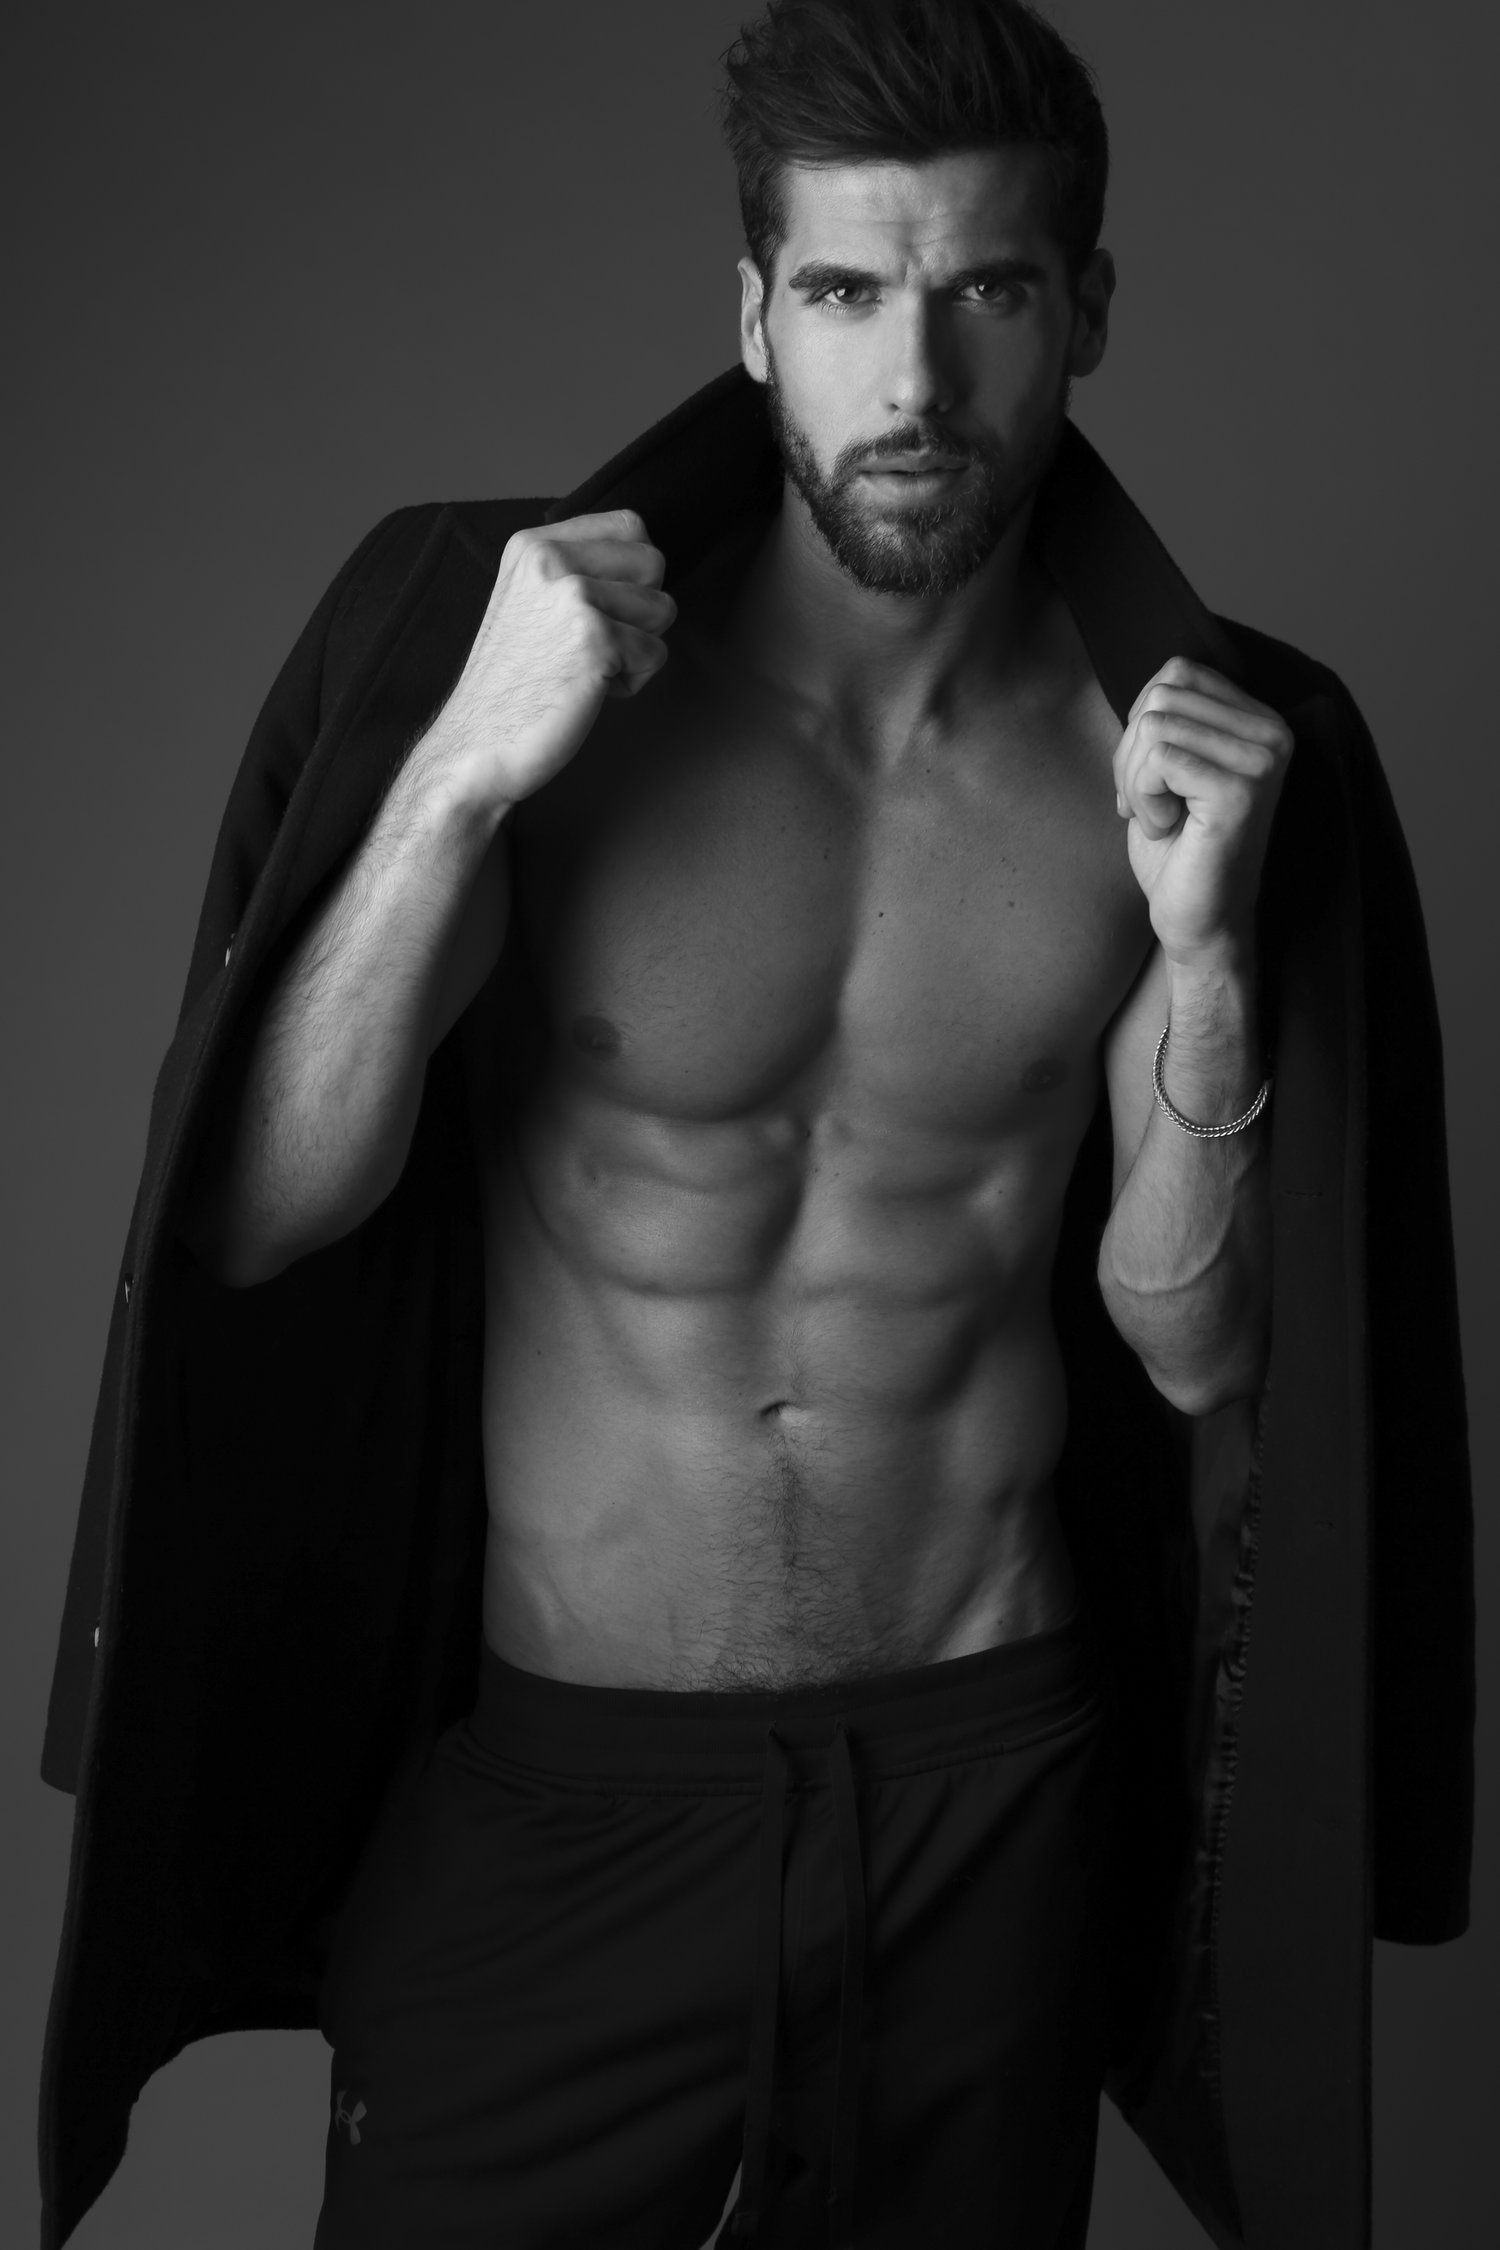 Adon Exclusive: Model Michael Ryan By Michael Dar